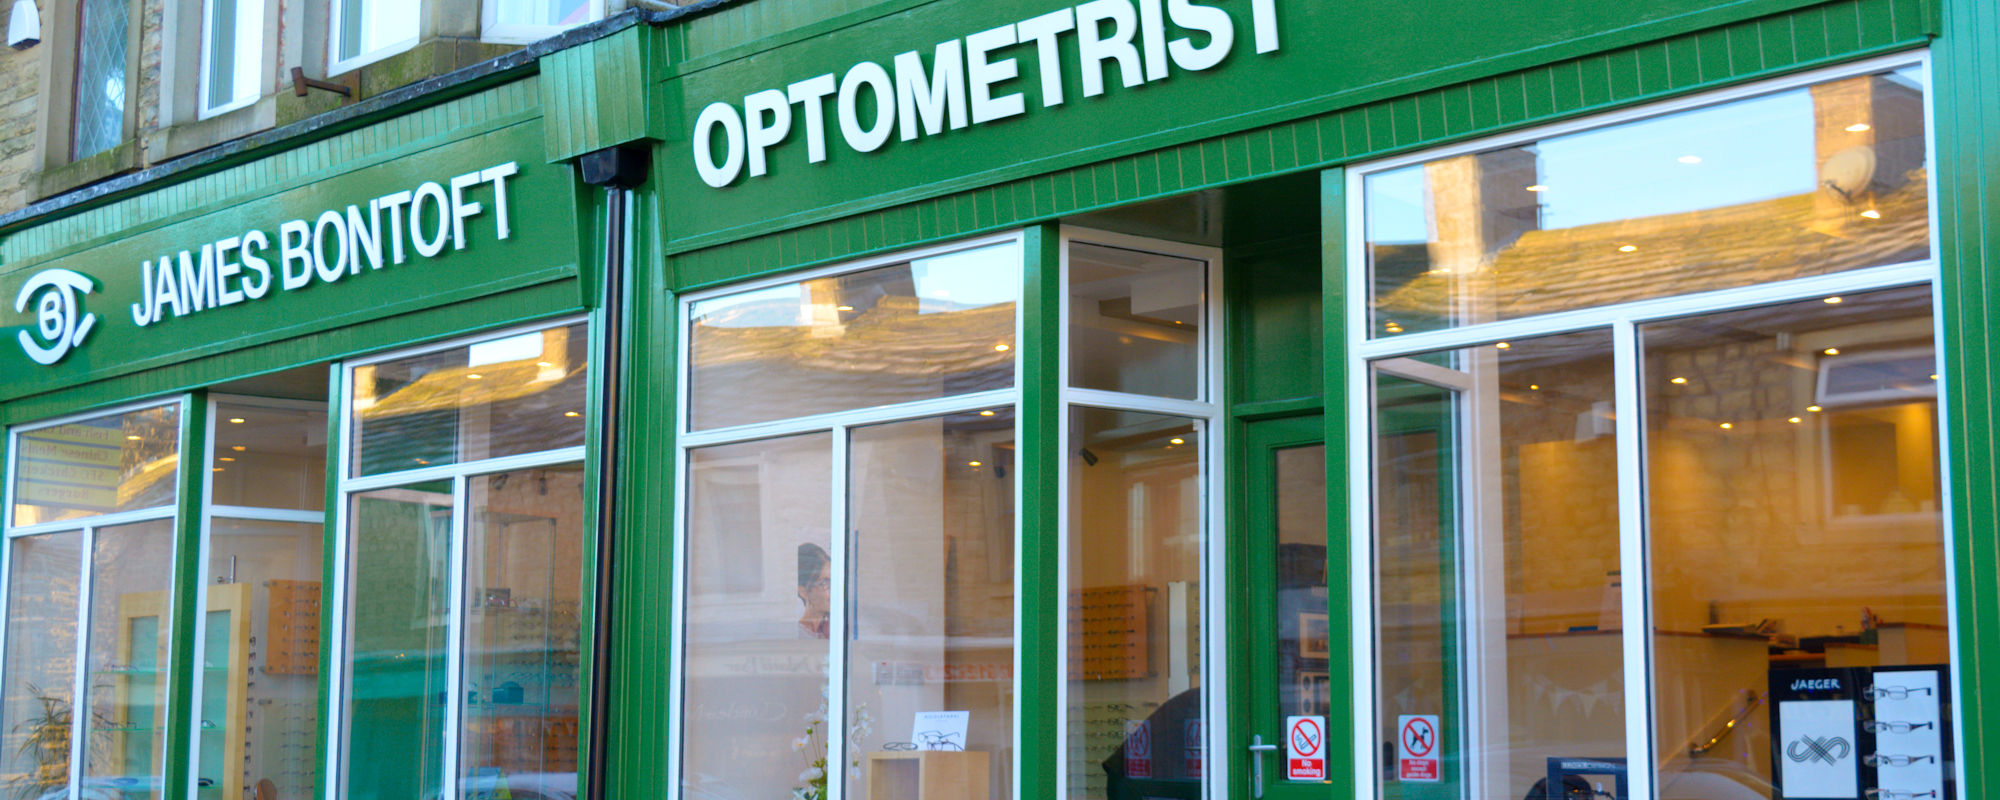 Gisburn's local optician - James Bontoft in Barnoldswick